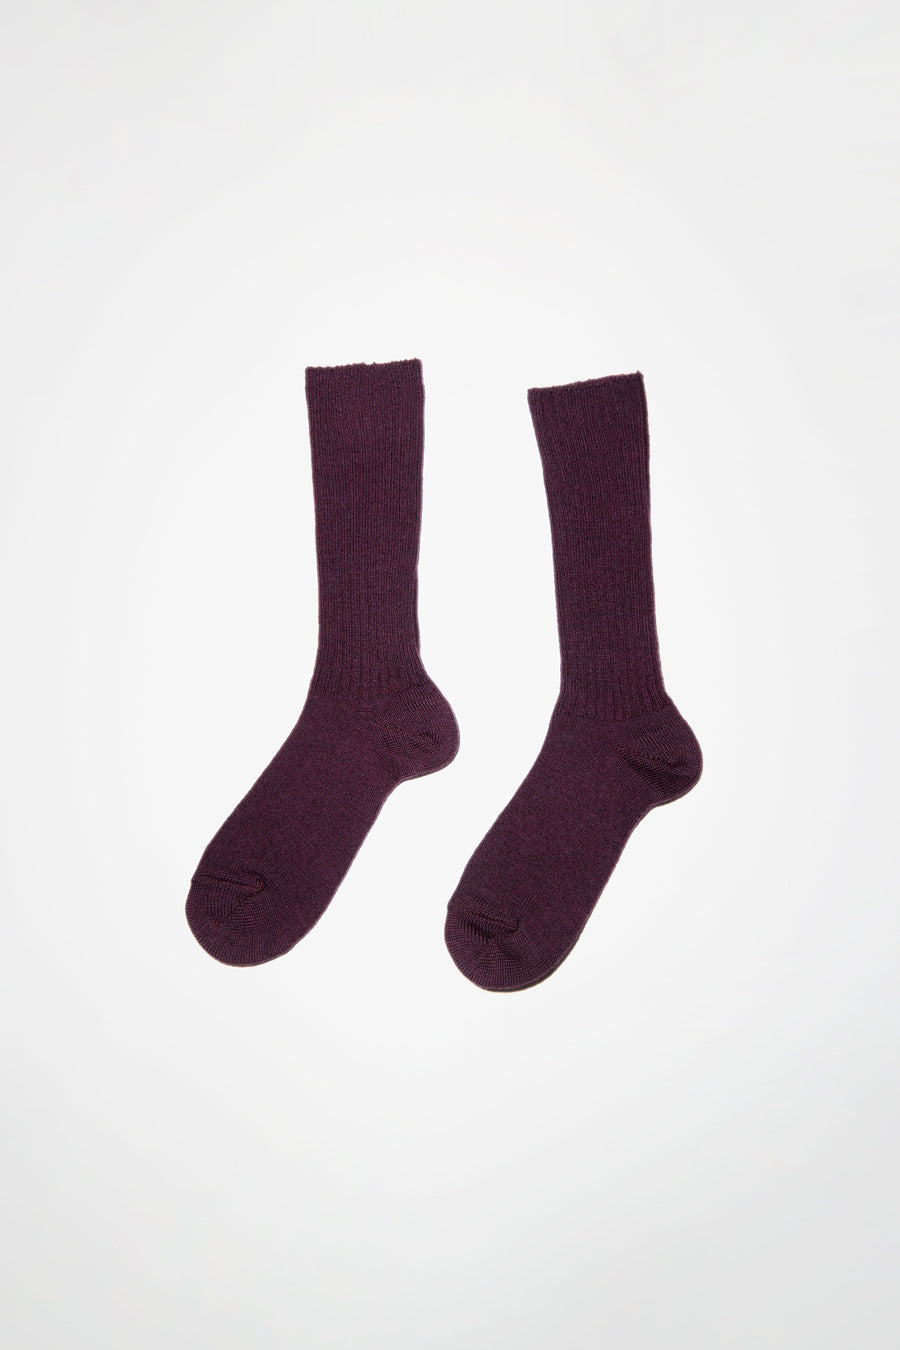 Maria La Rosa Extrafine Merino Ribbed Sock in Purple